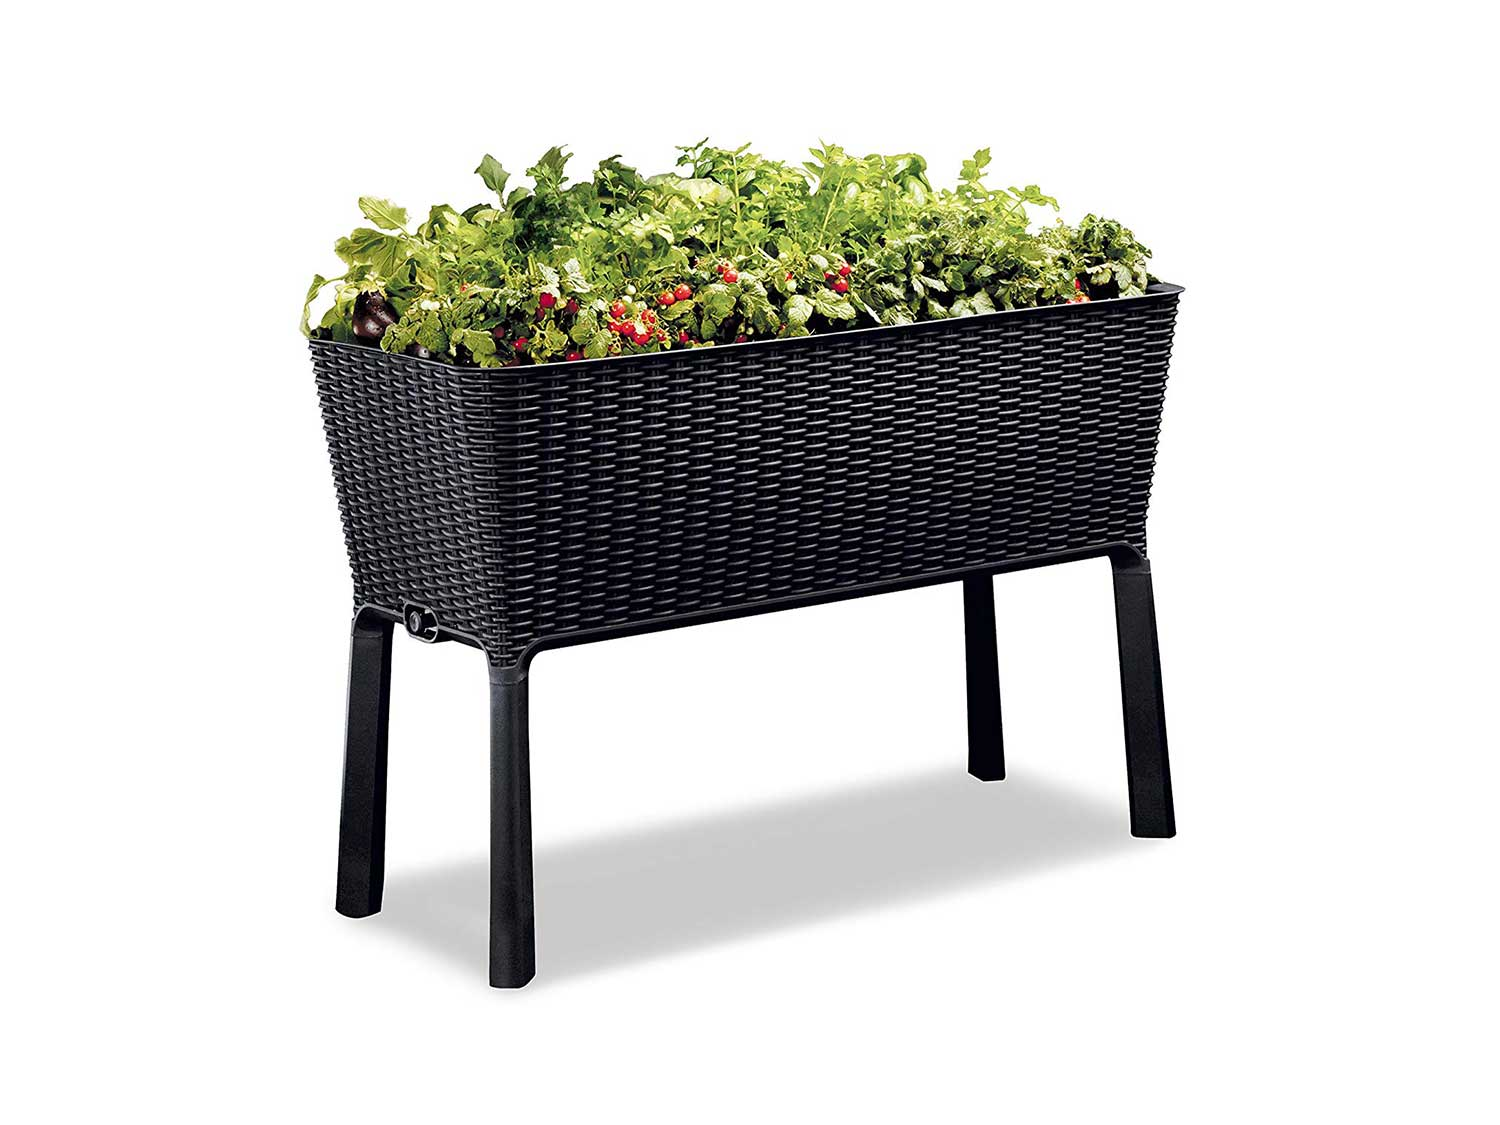 Keter Easy Grow 31.7 Gallon Raised Garden Bed with Self Watering Planter Box and Drainage Plug